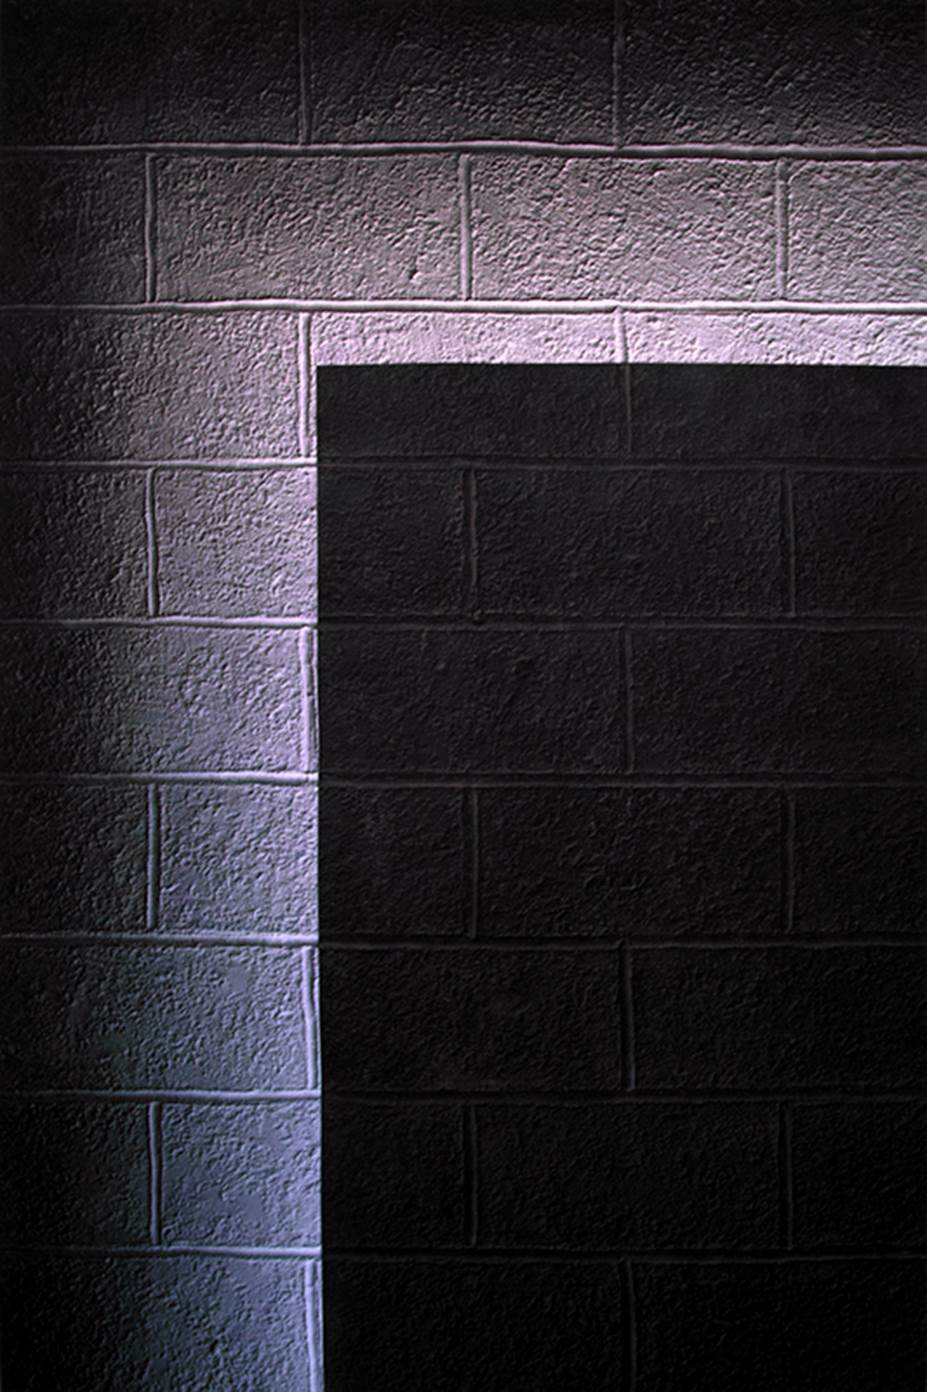 A cinder block wall that wants to shine - Nolan Haan